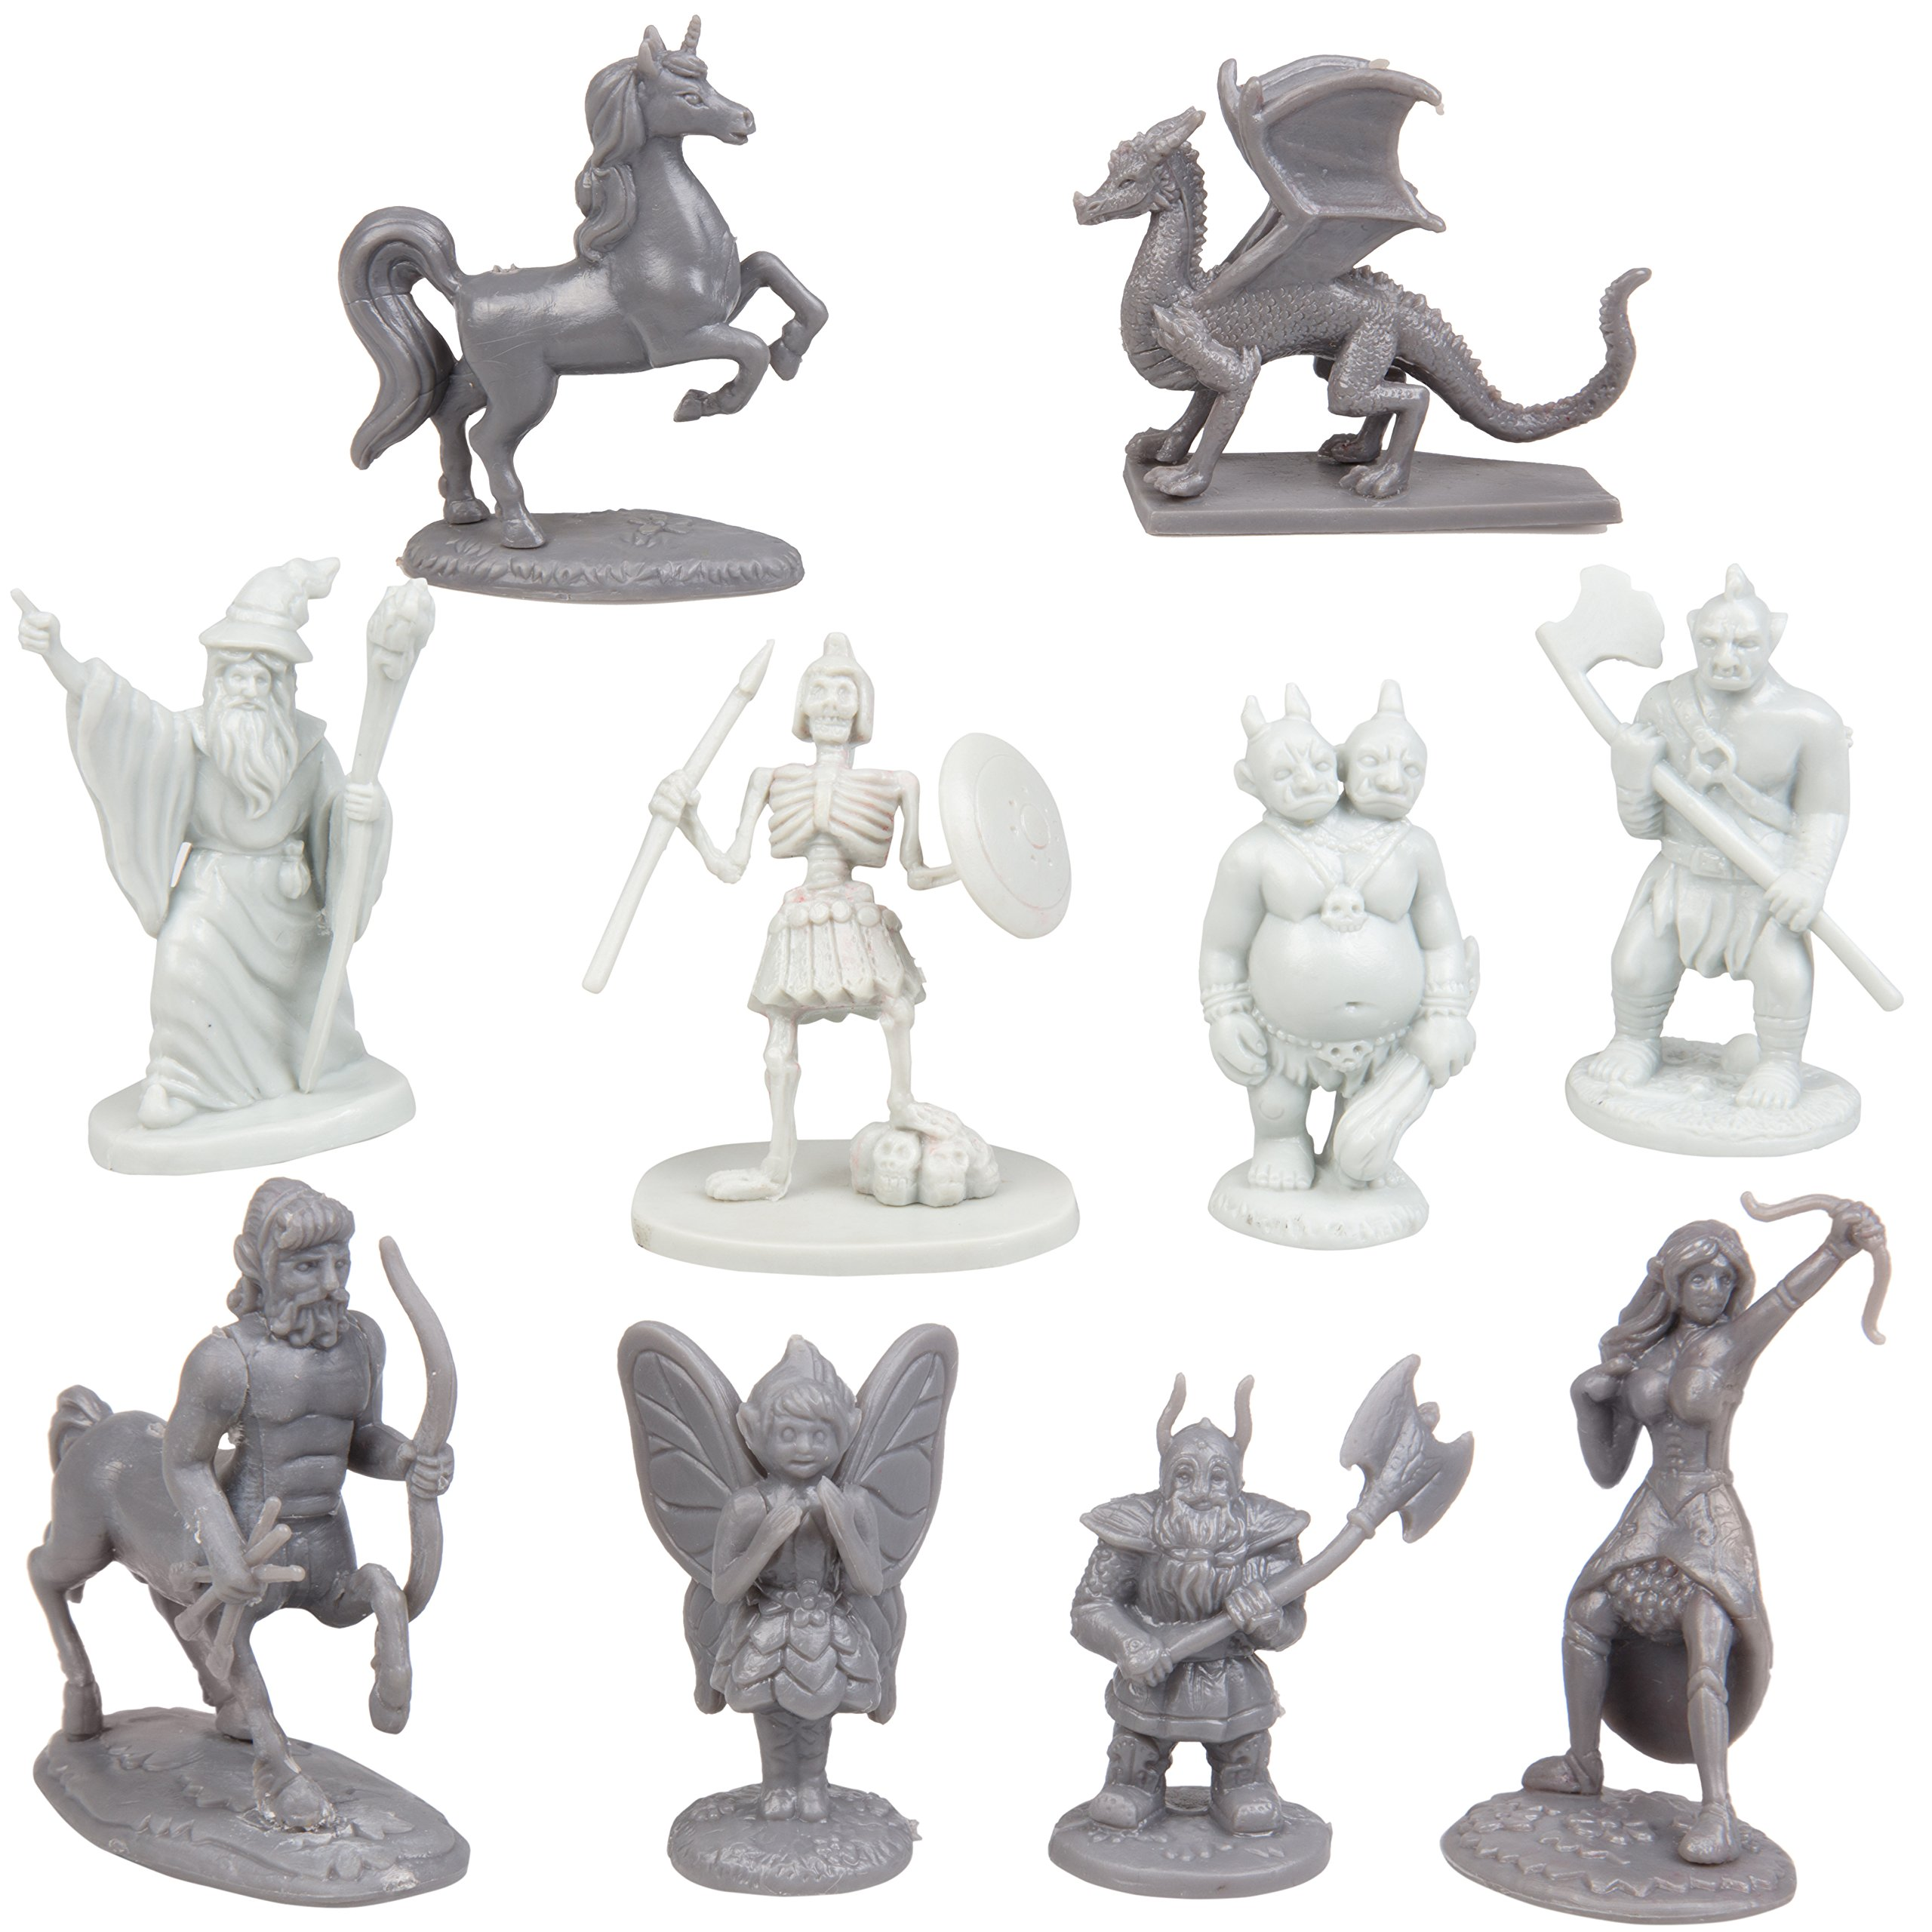 Scs Direct Fantasy Creatures Action Figure Playset 90pc Monster